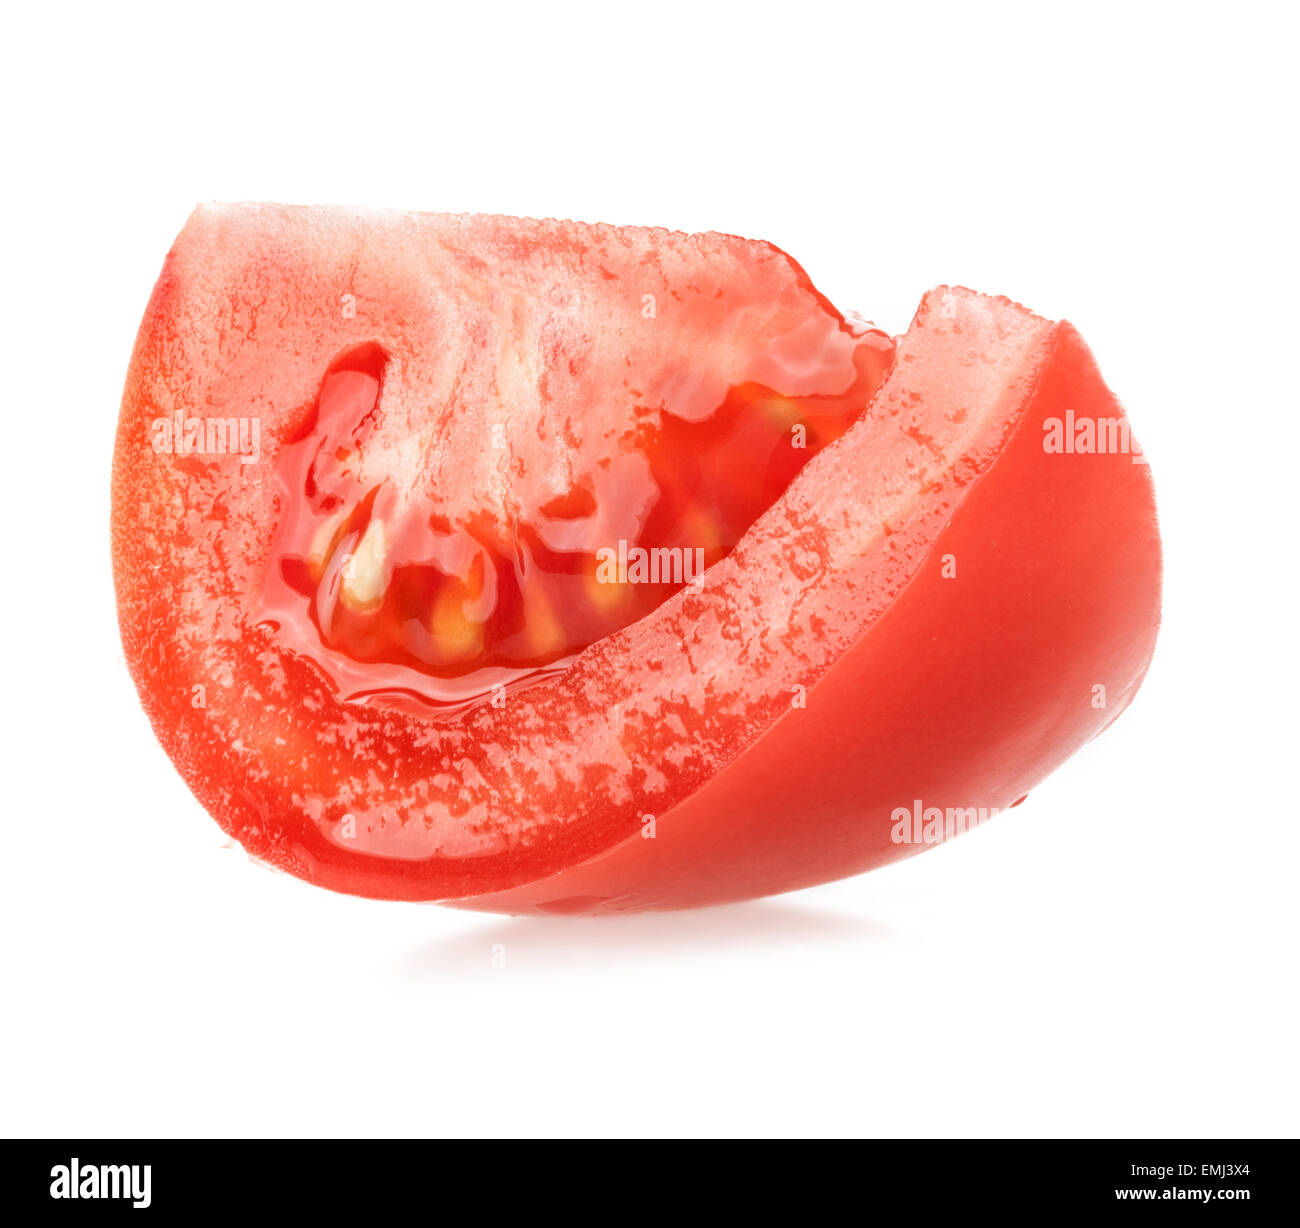 red tomato slice isolated on white background stock photo 81532812